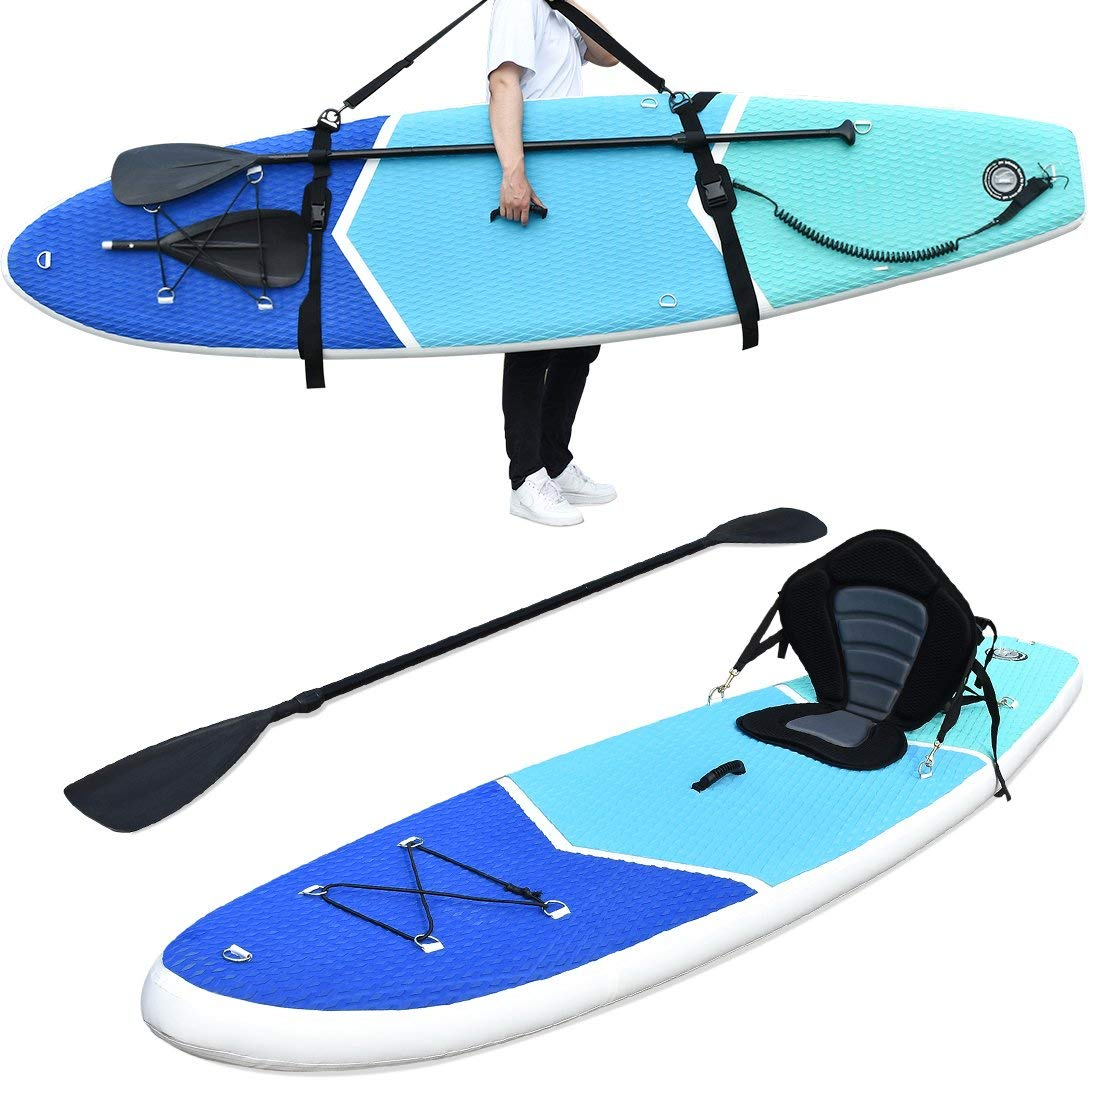 """Zupapa All in One Inflatable Stand Up Paddle Board 6"""" Thick 10' Non-Slip Deck with Kayak Conversion Kit, Shoulder Strap, Backpack, Coil Leash, Pump"""